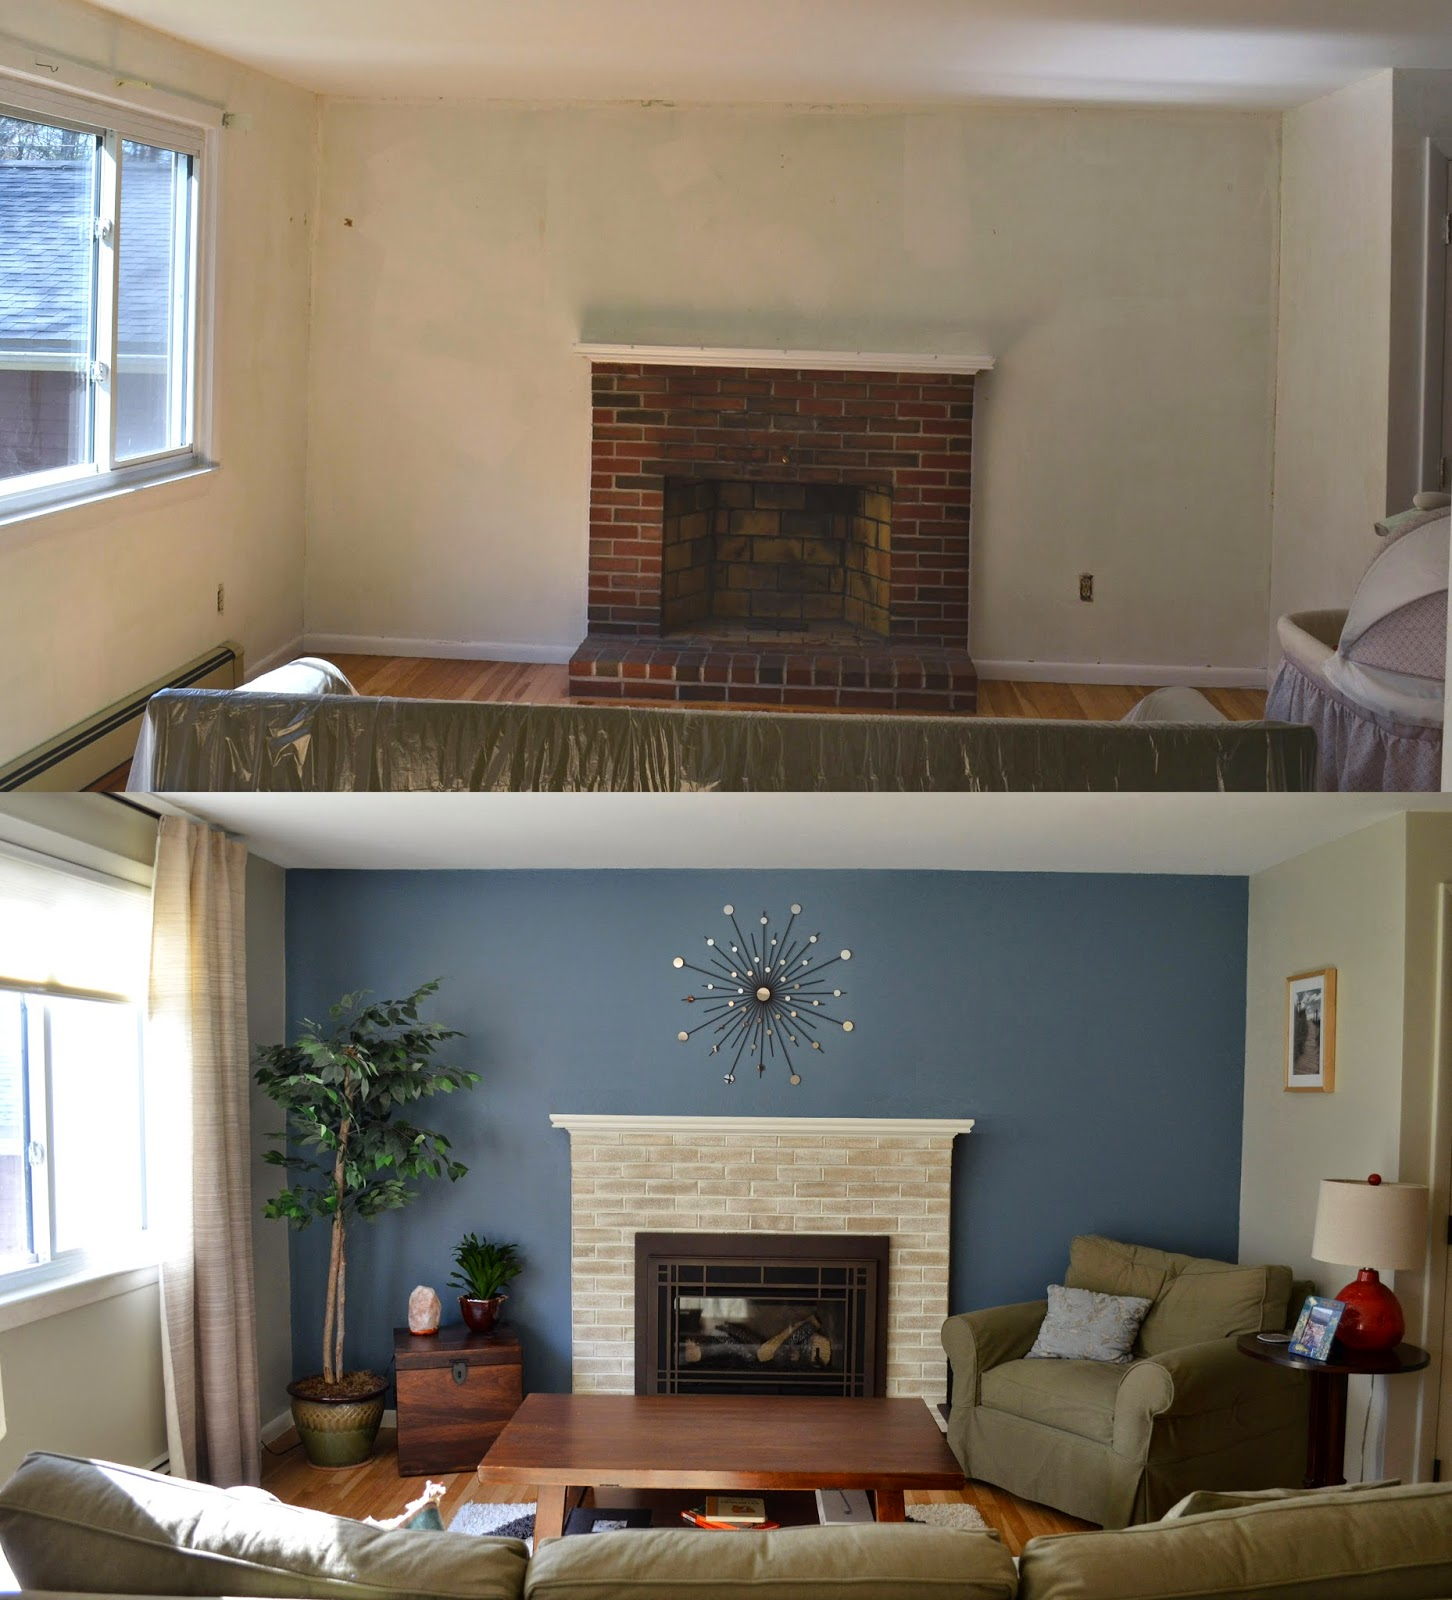 Cinnabar Benjamin Moore Accent Wall: WEAFER DESIGN: Before And After, Living Room And Dining